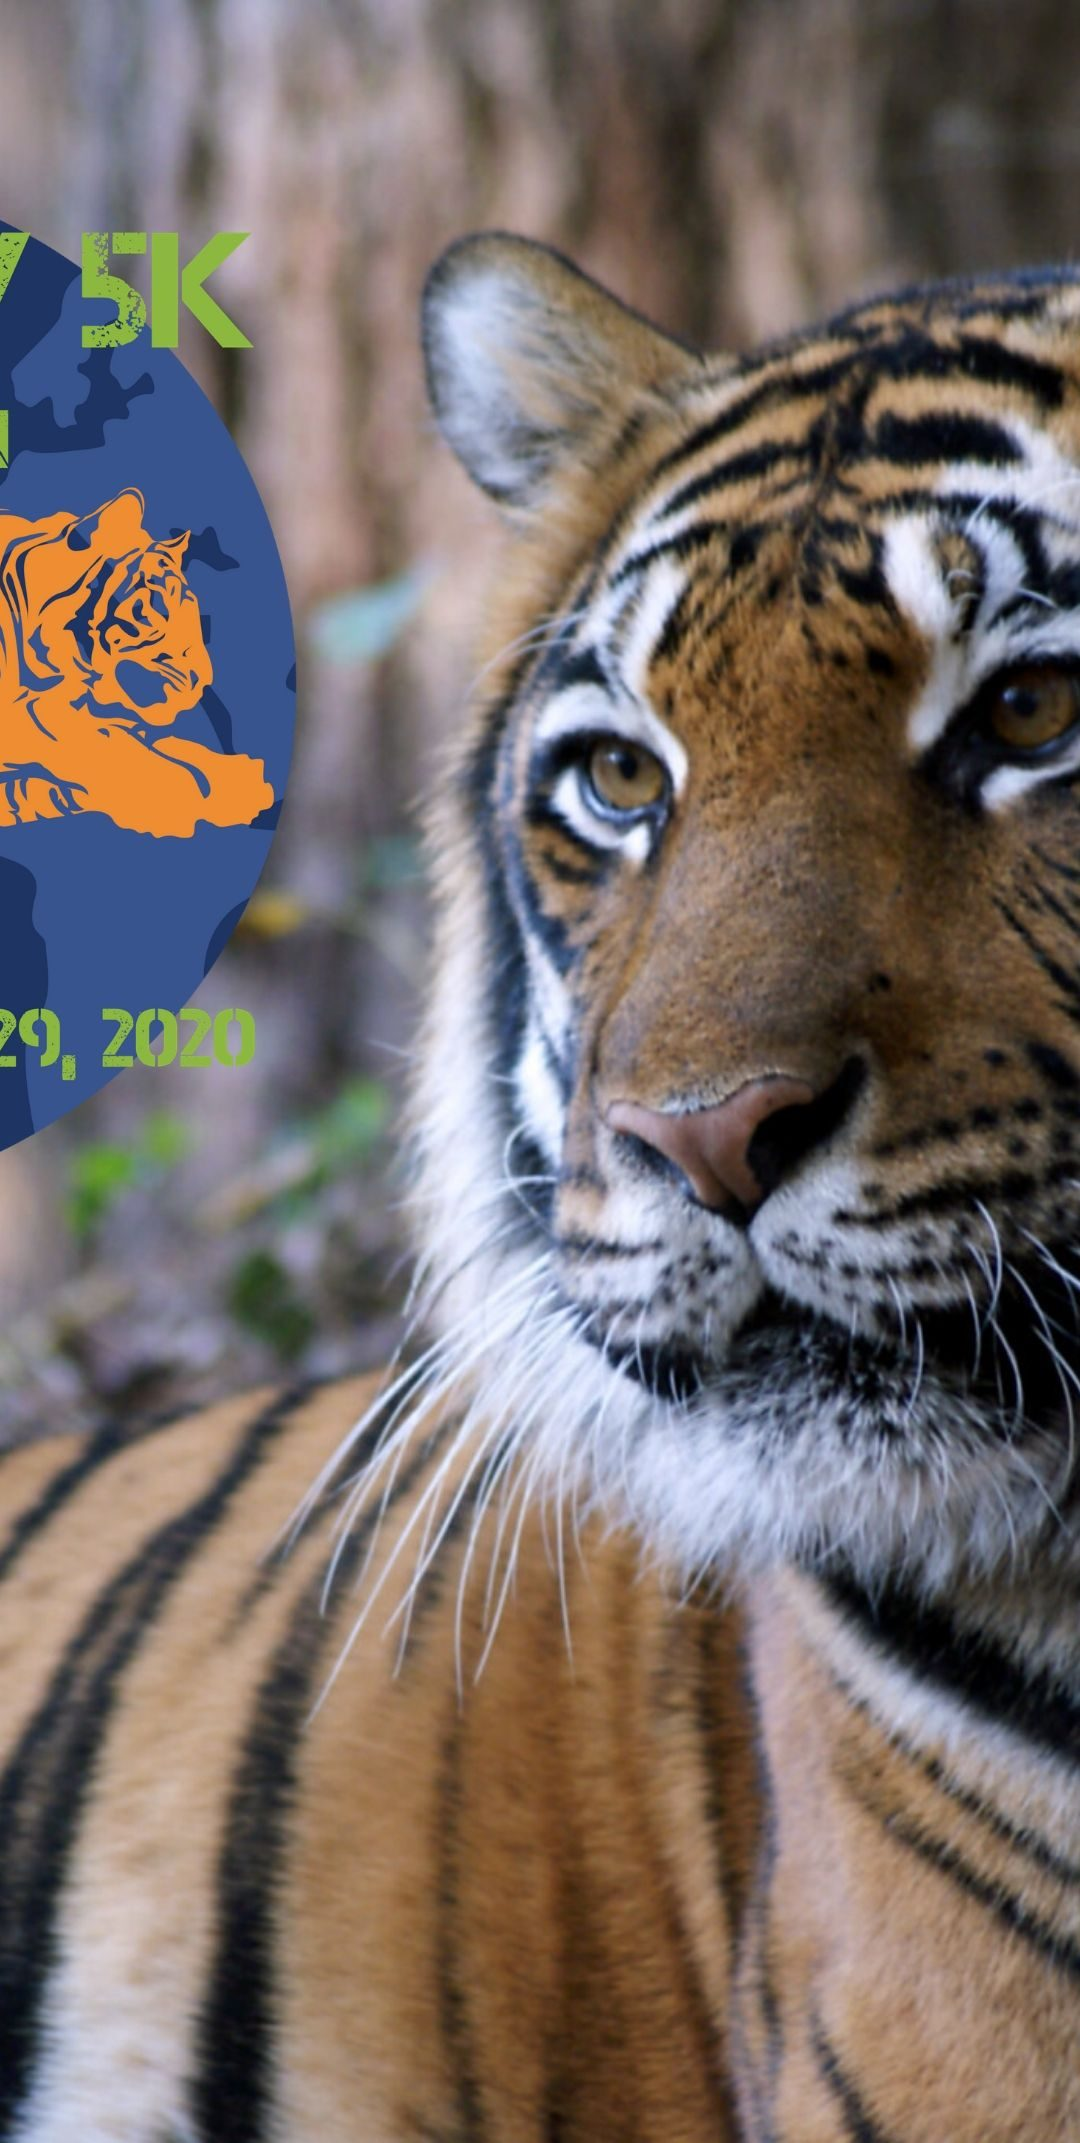 What would the tigers of Carolina Tiger Rescue be like as Tiger Day 5k teammates?